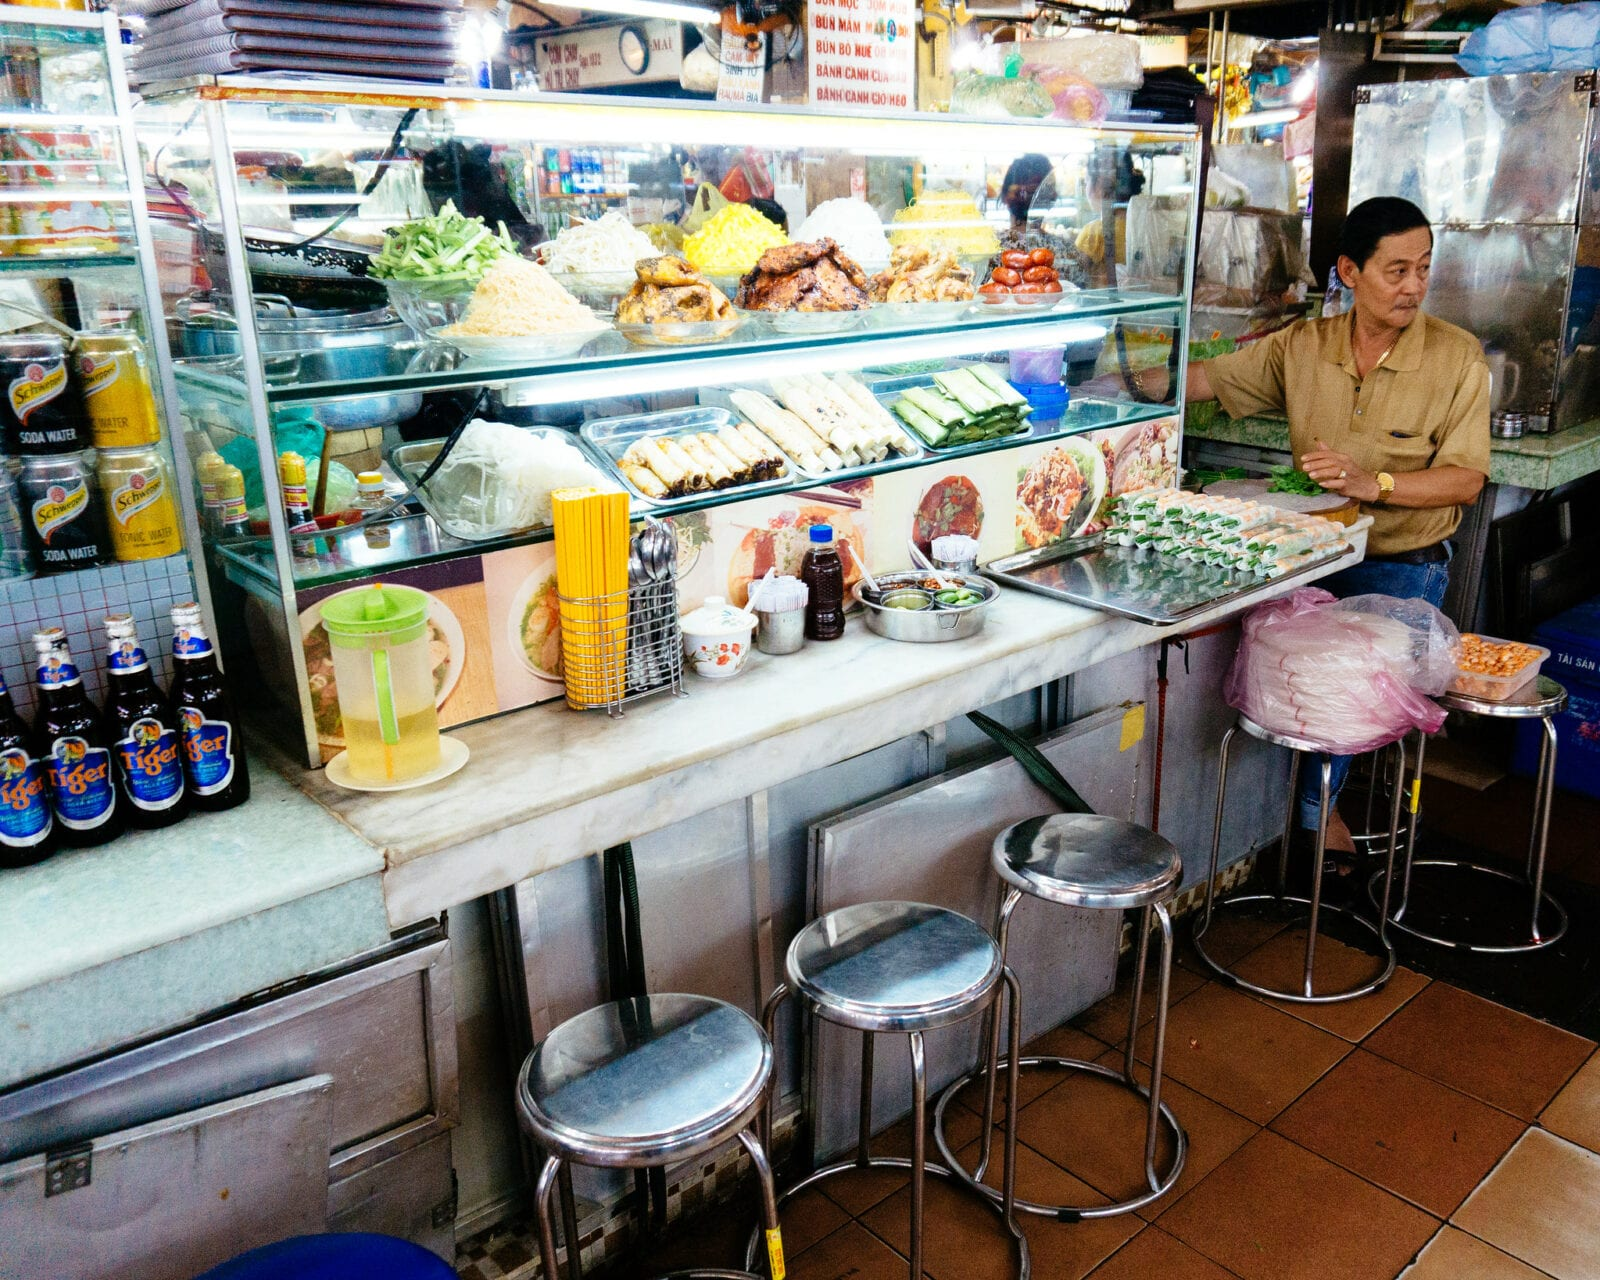 Image of the Ben Thanh Market at lunch in Ho Chi Minh City, Vietnam